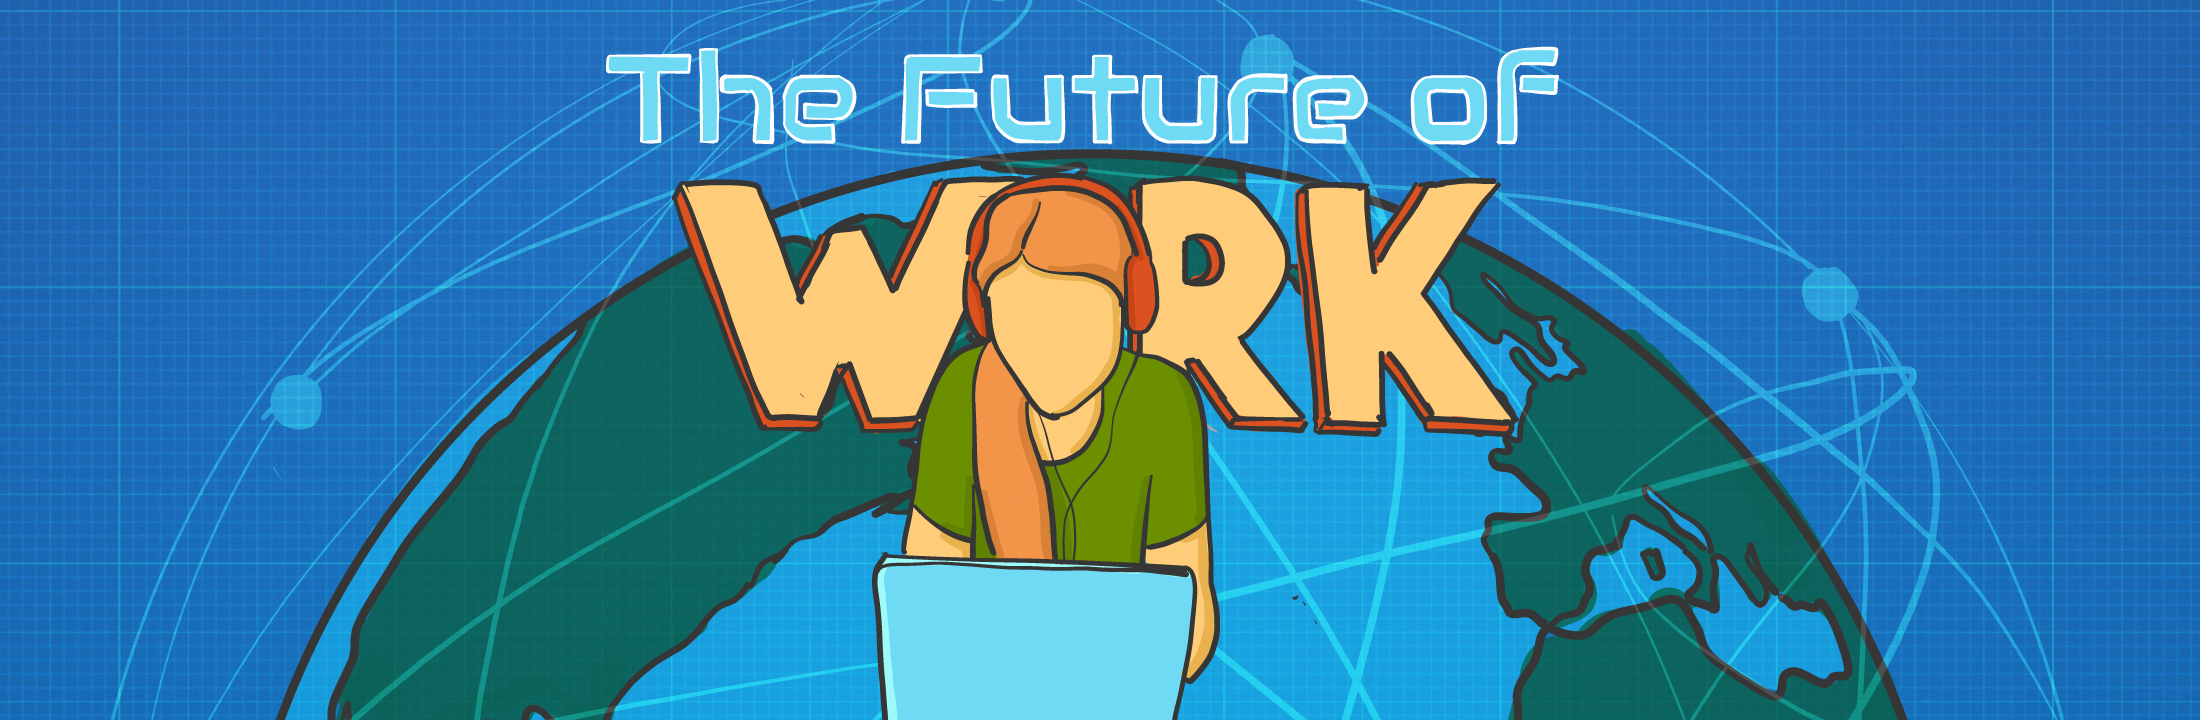 Future-work-series-cover